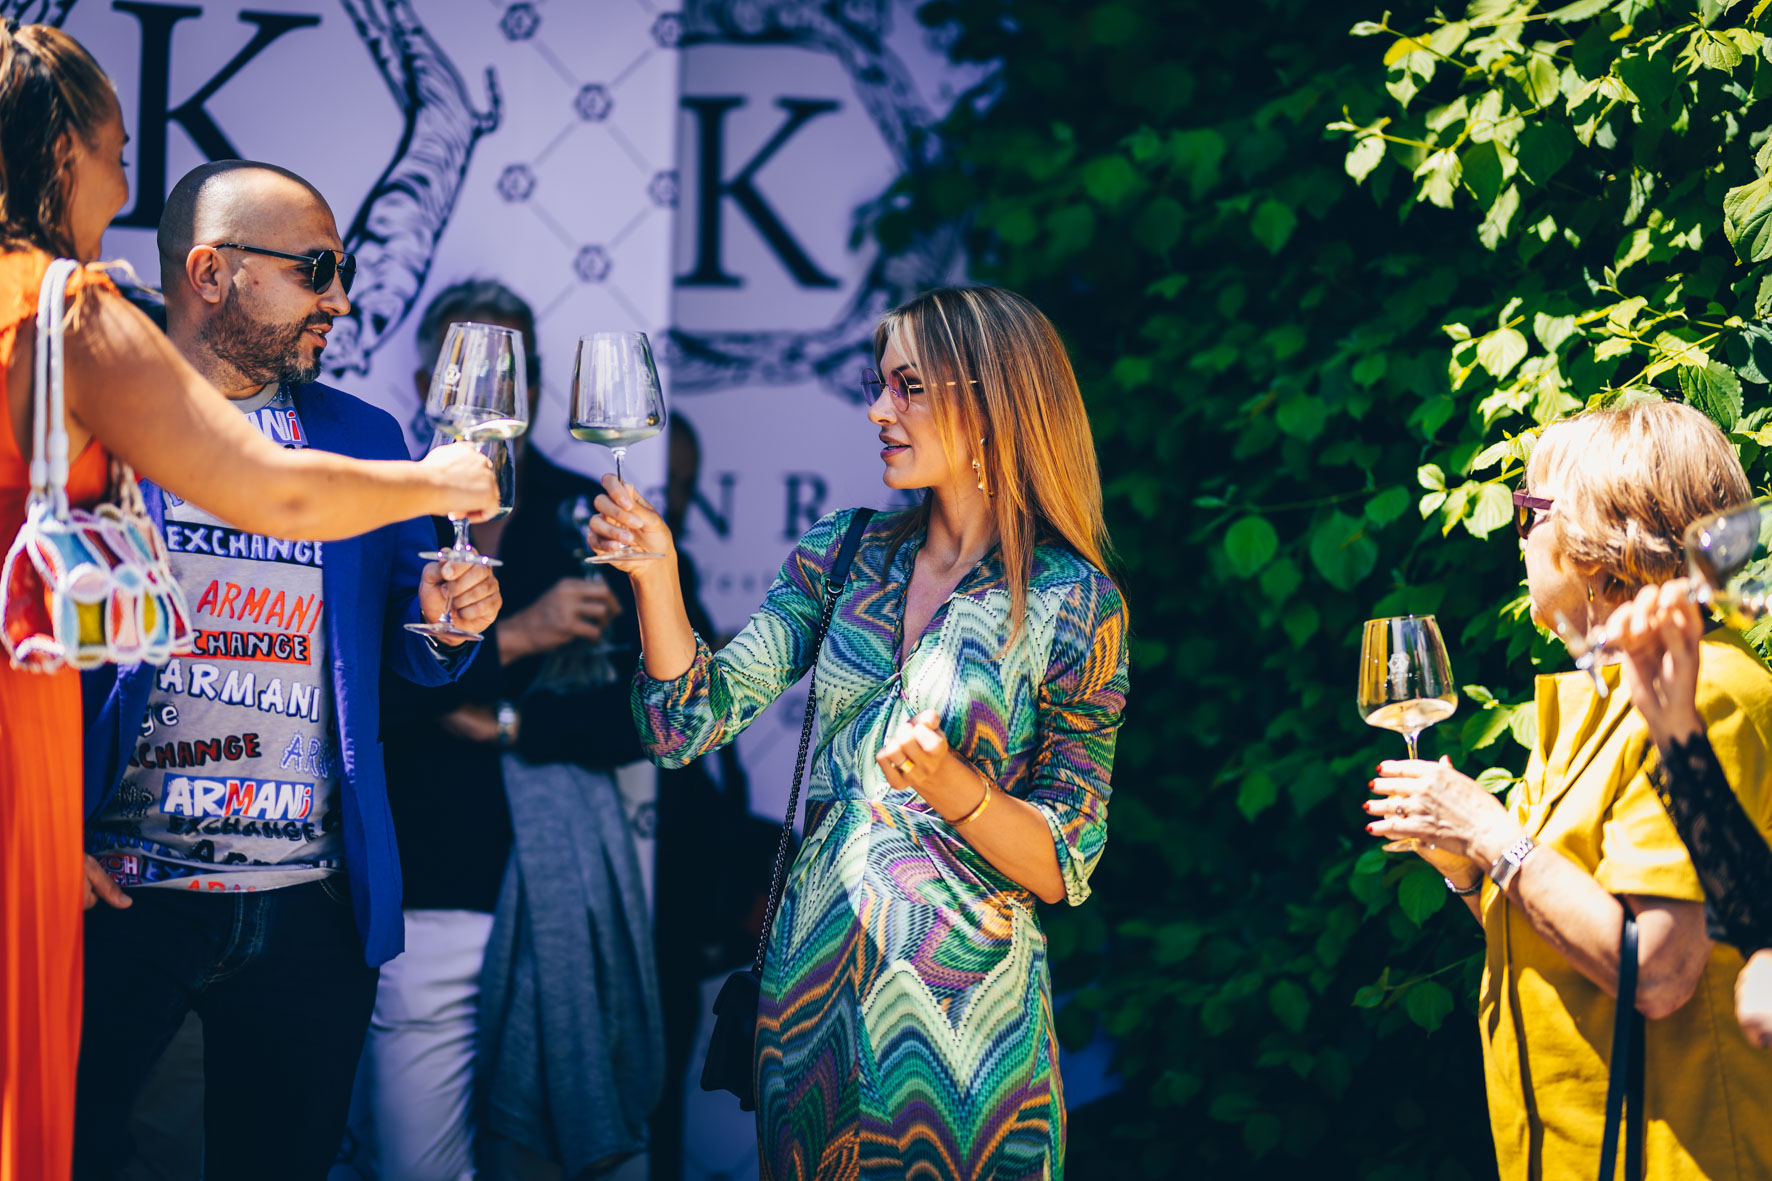 Konrad-lifestyle-art-basel-%22belvedere-secret-sunday%22-2019-6.jpg